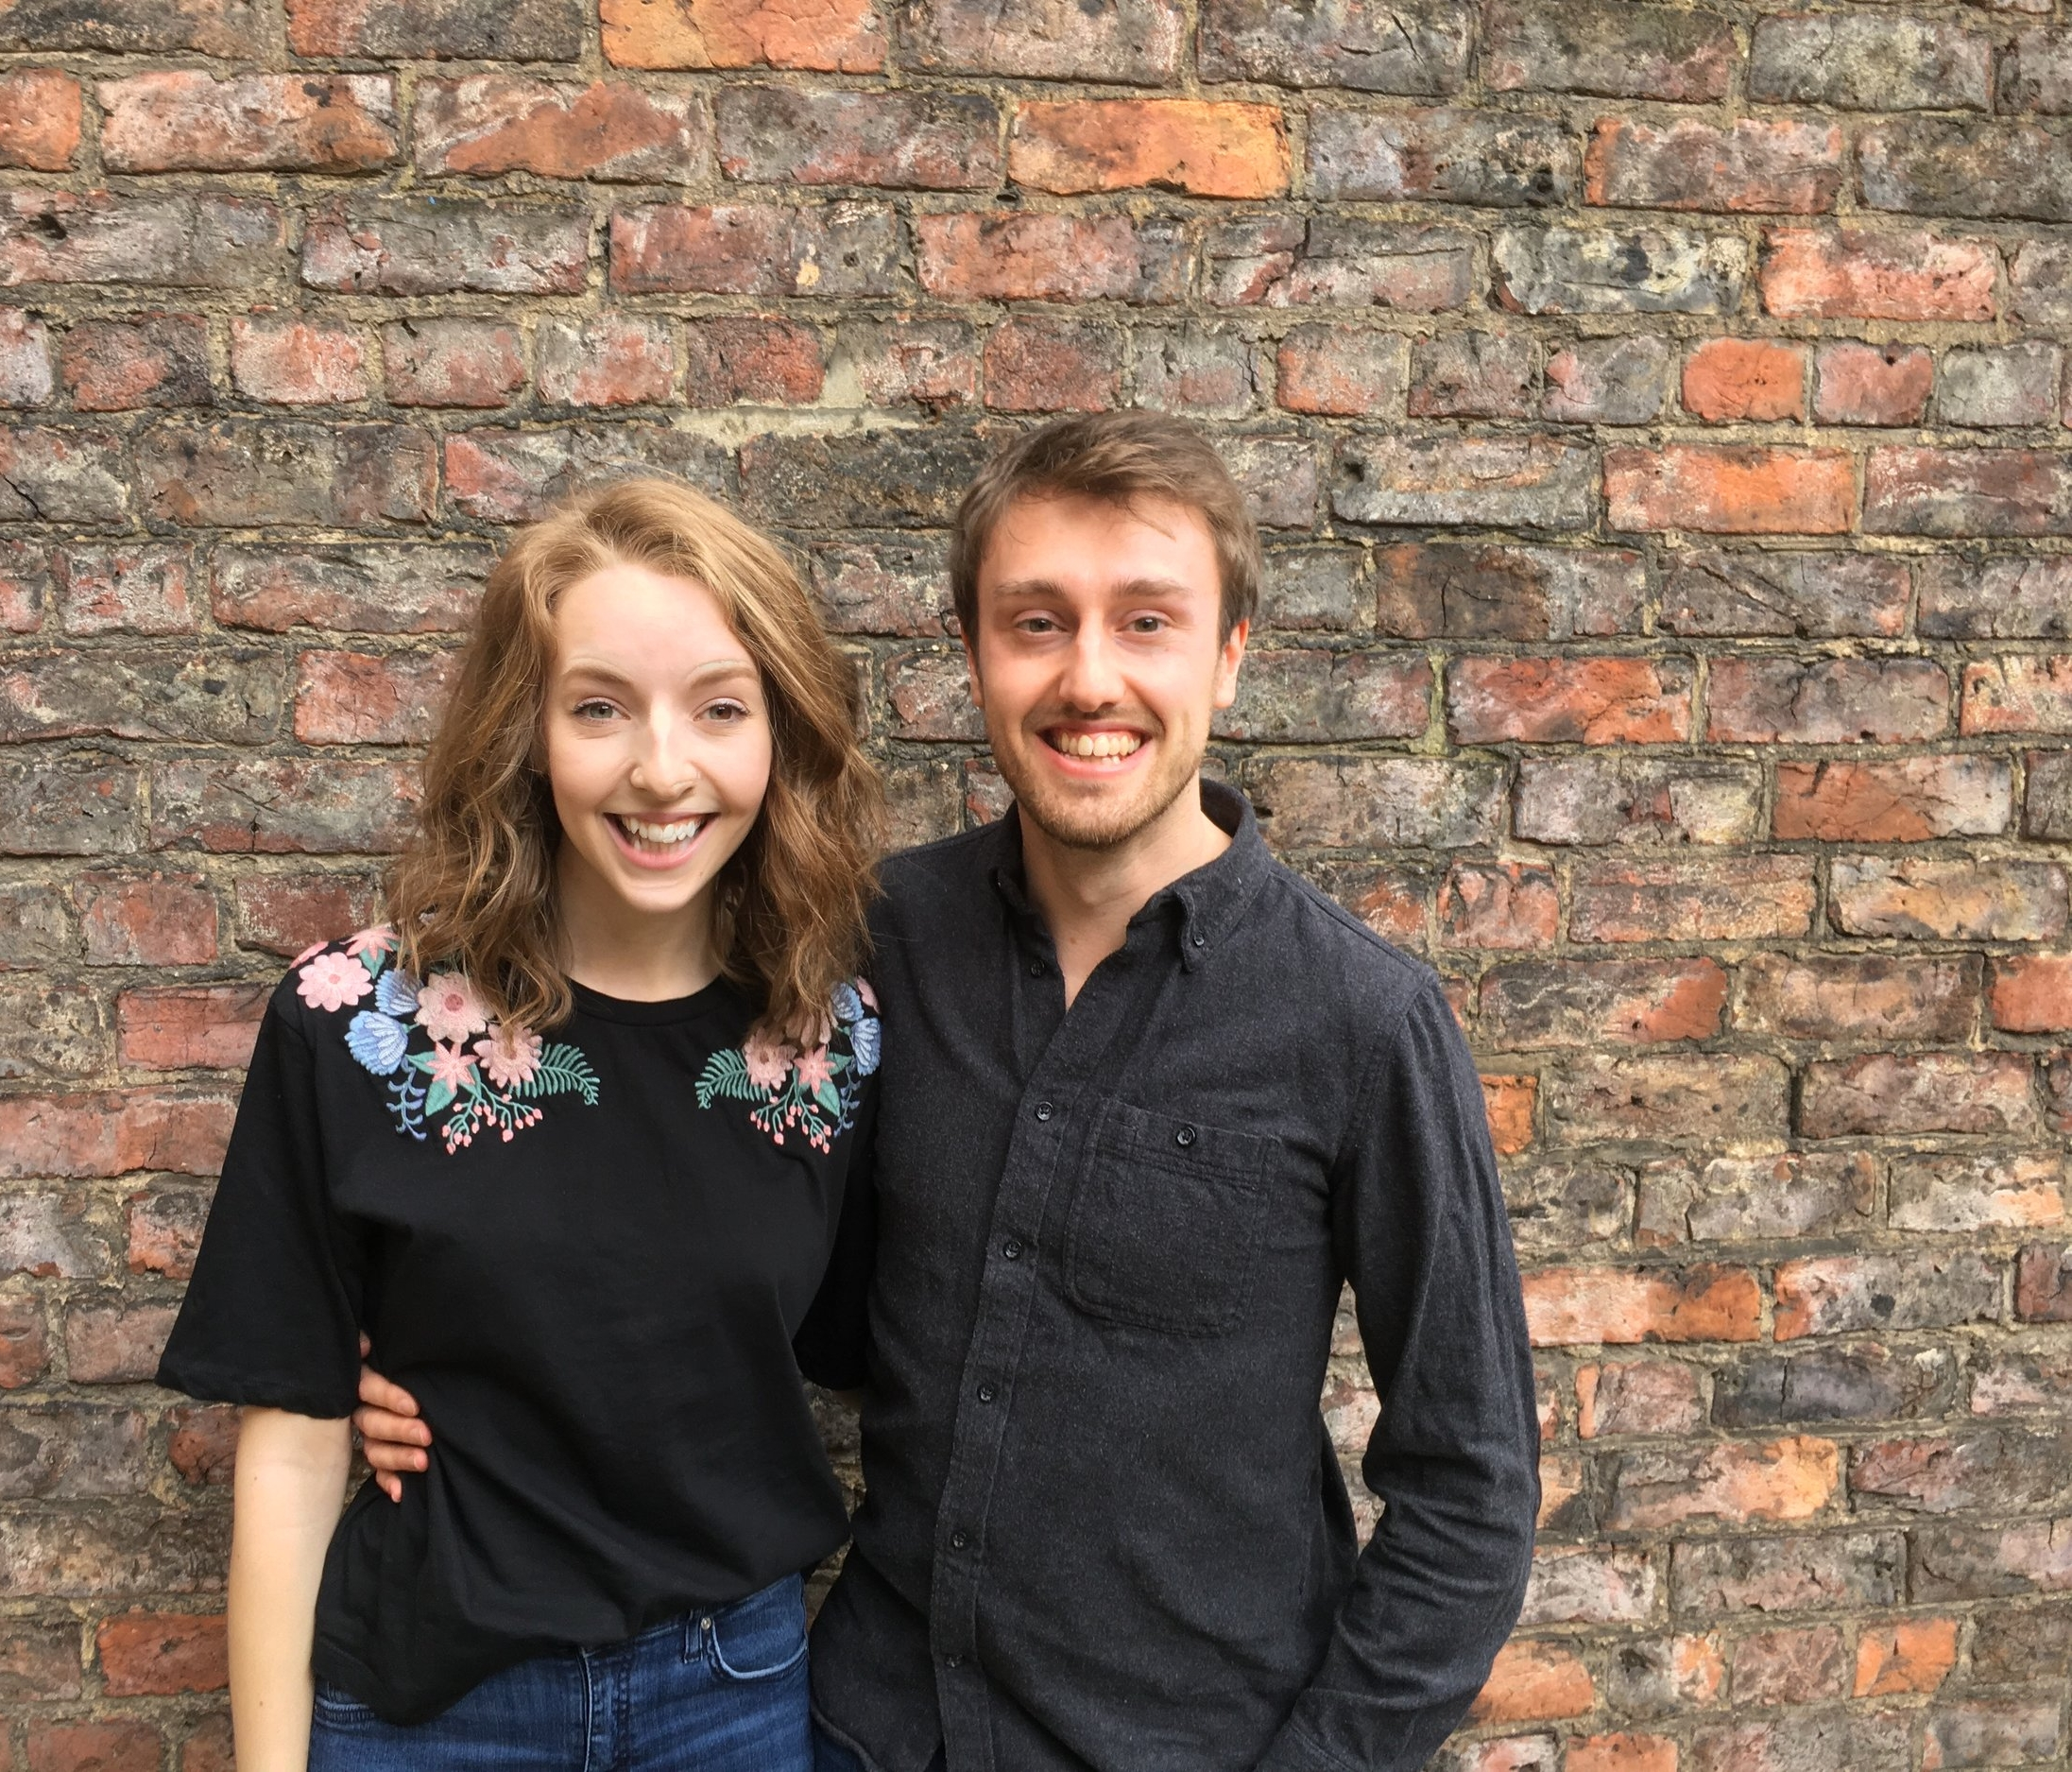 Holly & Ben Walker - Holly & Ben Walker are the G2 City service leaders, working with a wider team, and Christian Selvaratnam, who is the ordained leader of G2.Leadership teams